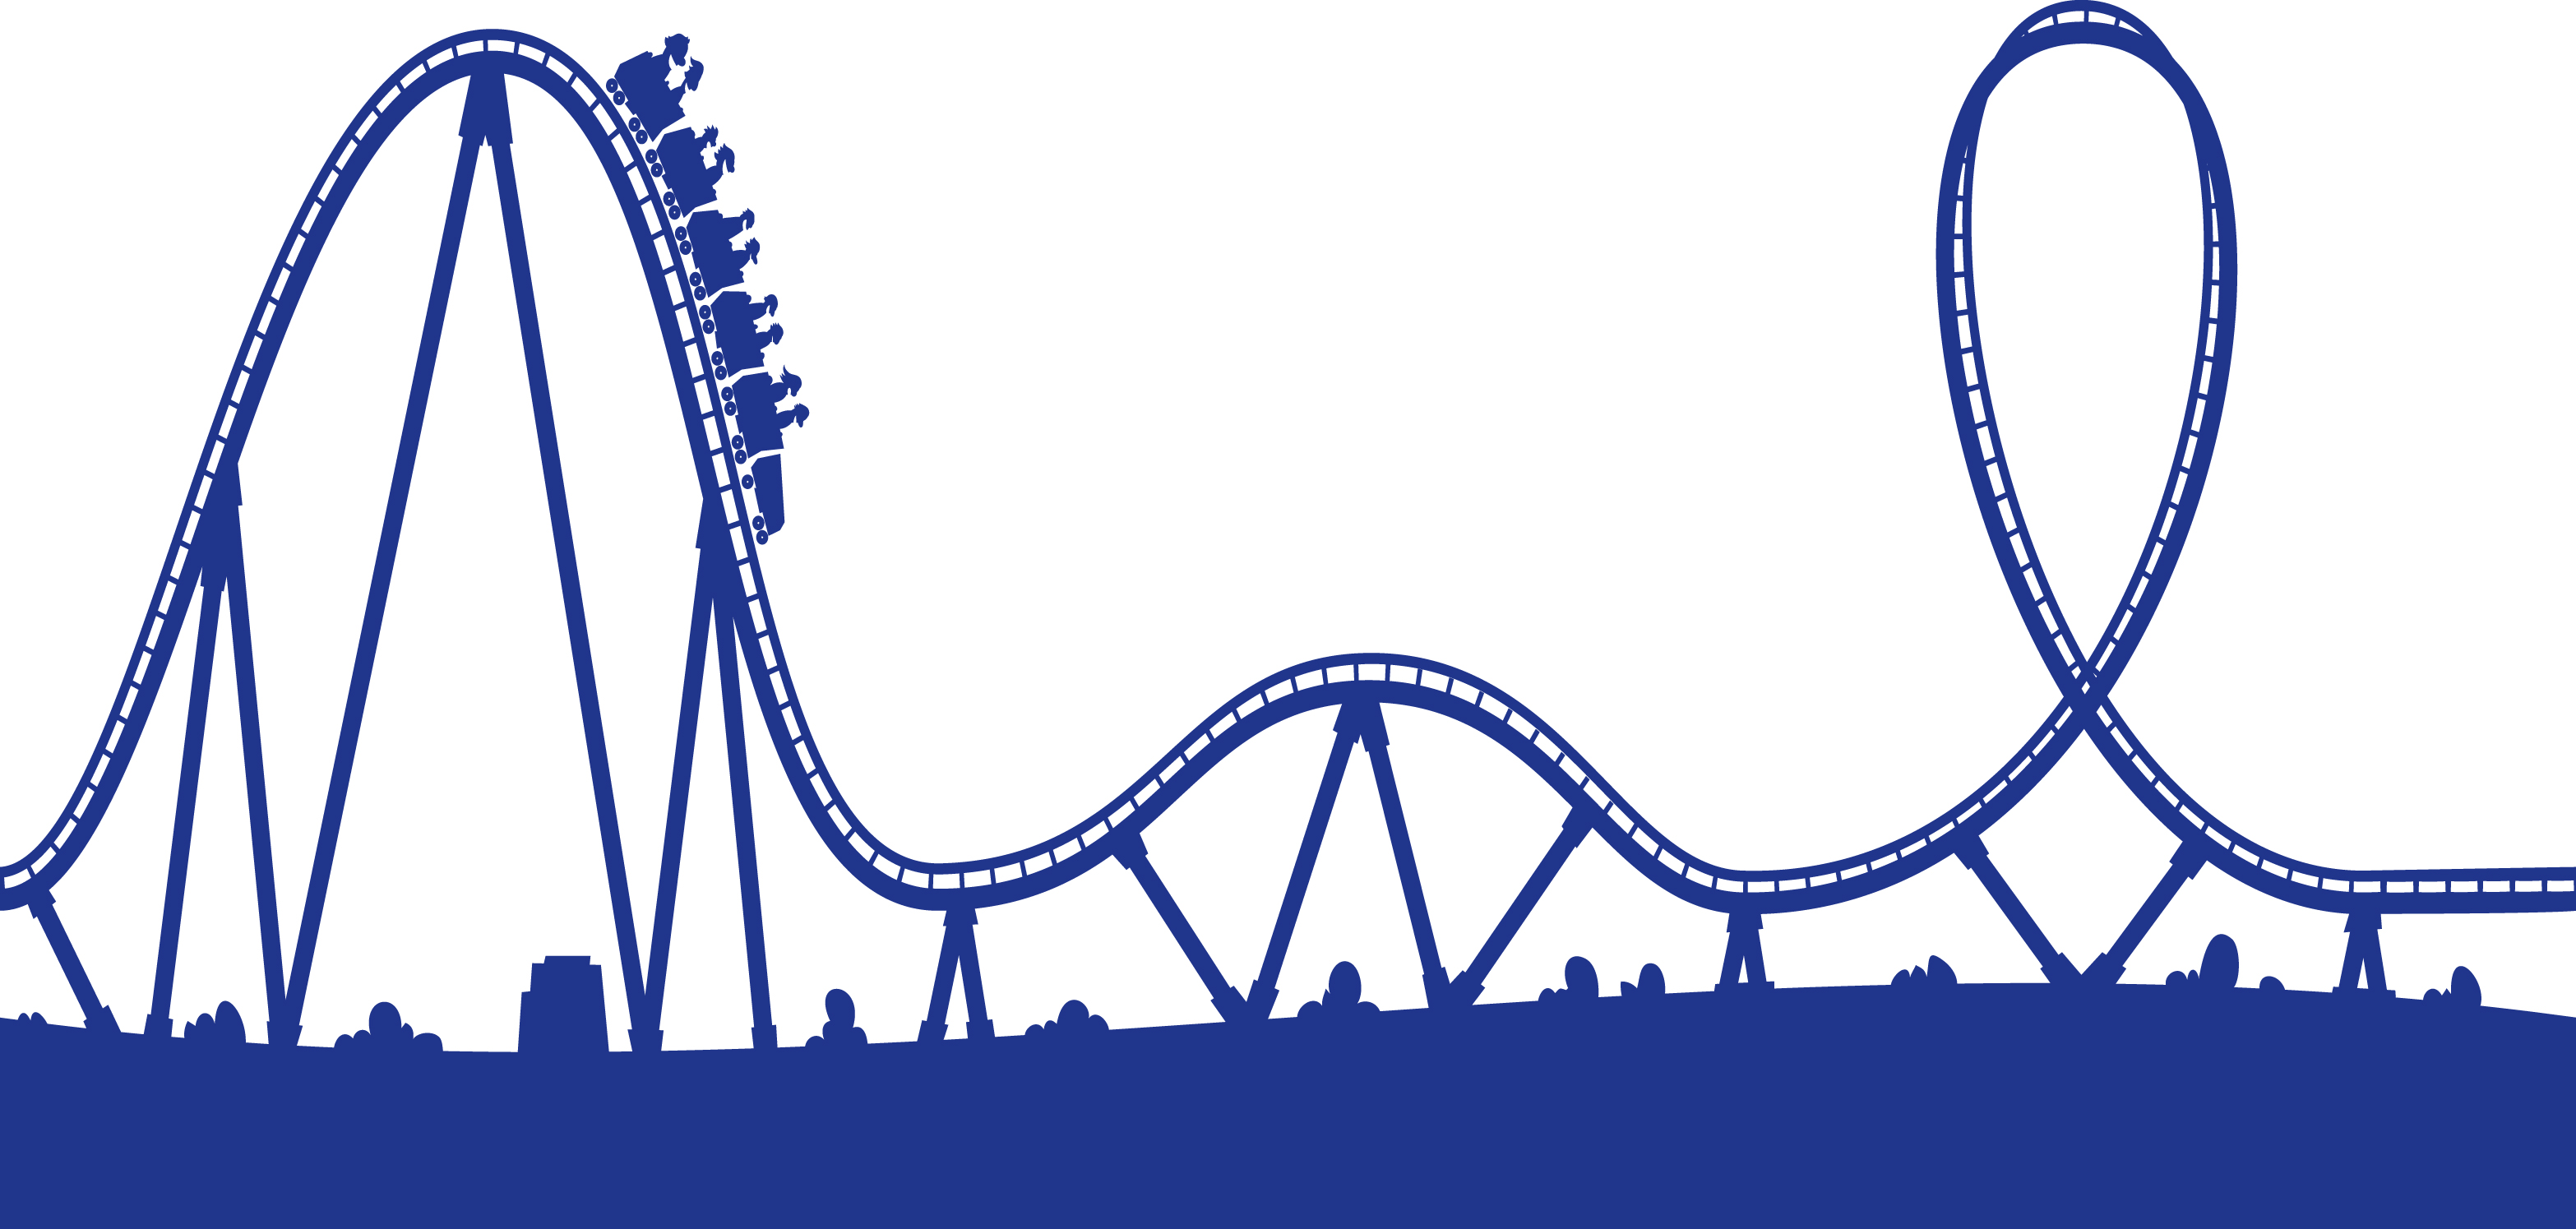 Rollercoaster clipart. Roller coaster track